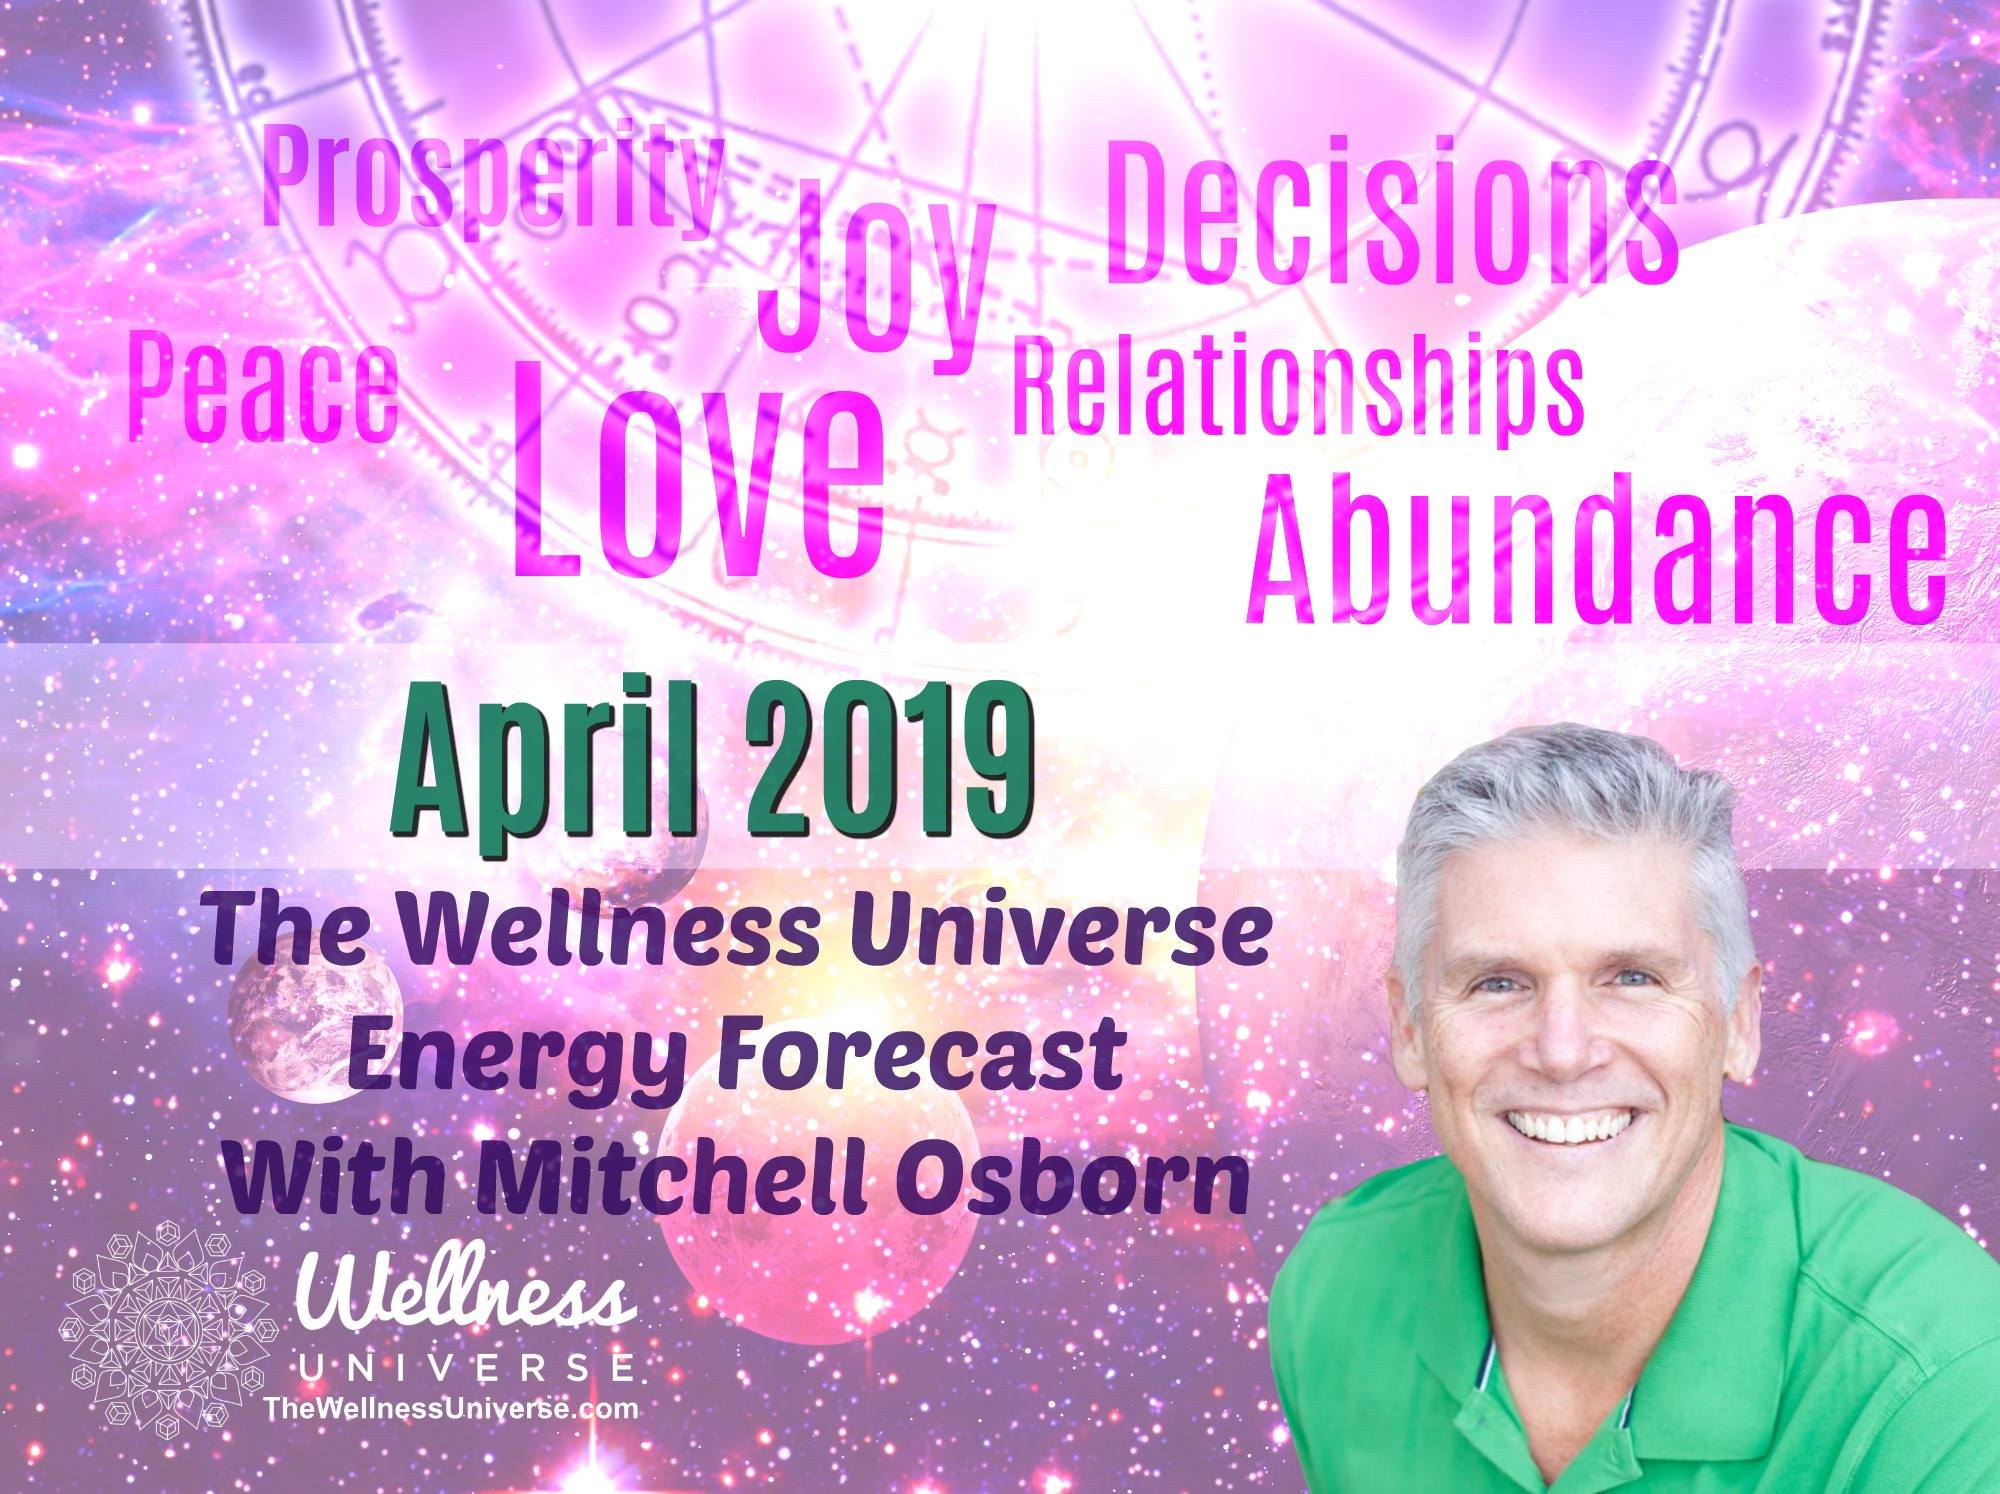 Energy Forecast for April 2019 with Mitchell Osborn #TheWellnessUniverse #WUVIP #ForecastForApril2019 #Energy #EnergyForecast